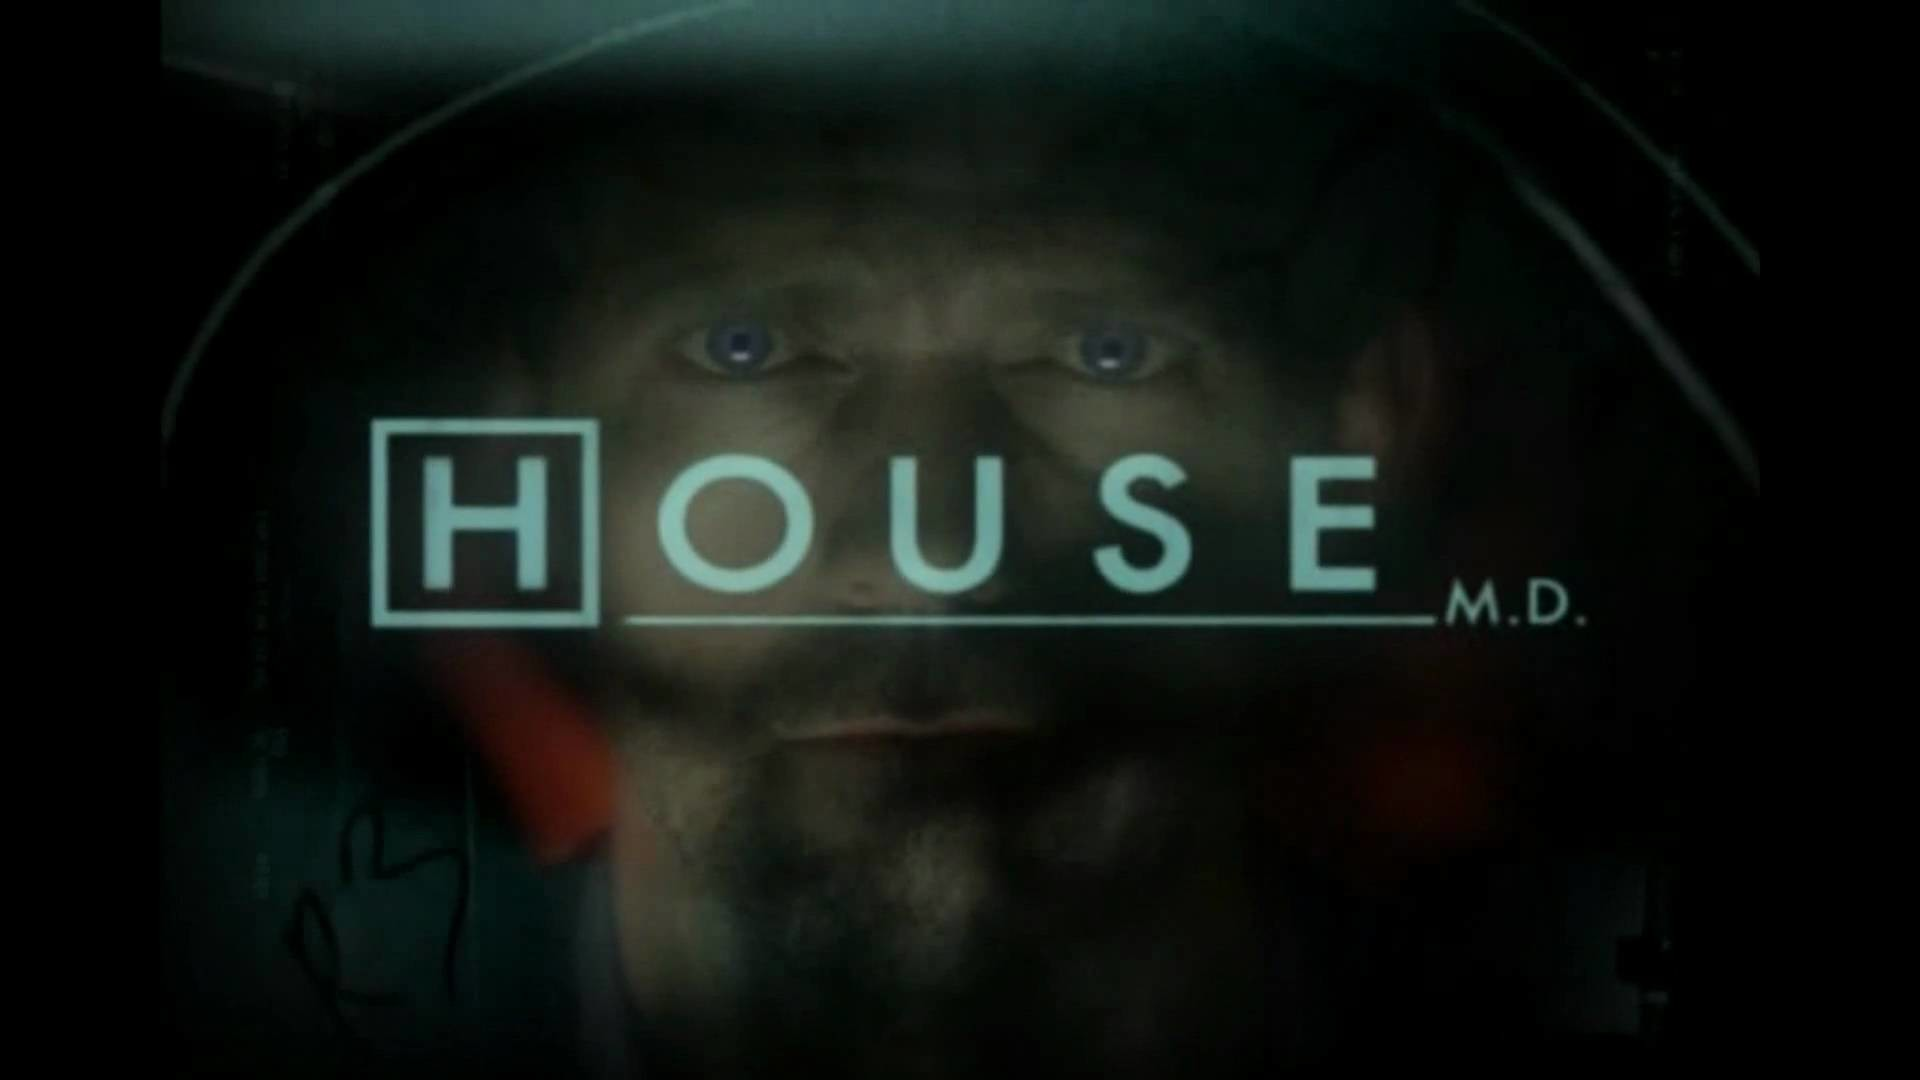 Res: 1920x1080, Anatomy of a Medical Drama: House, MD